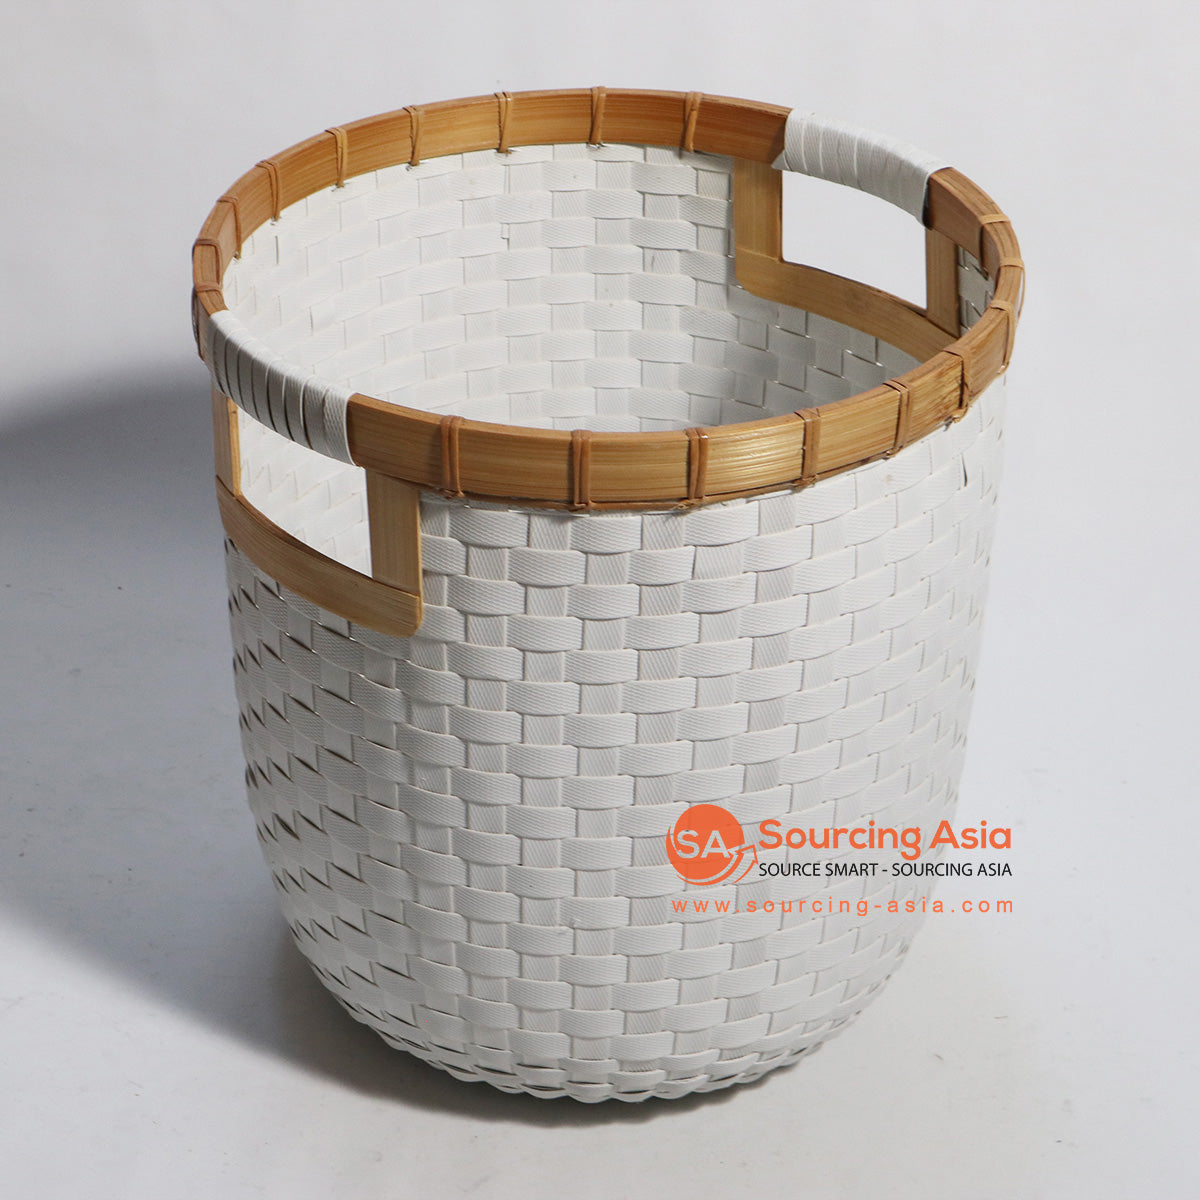 HBSC187 SYNTHETIC RATTAN AND BAMBOO BASKET